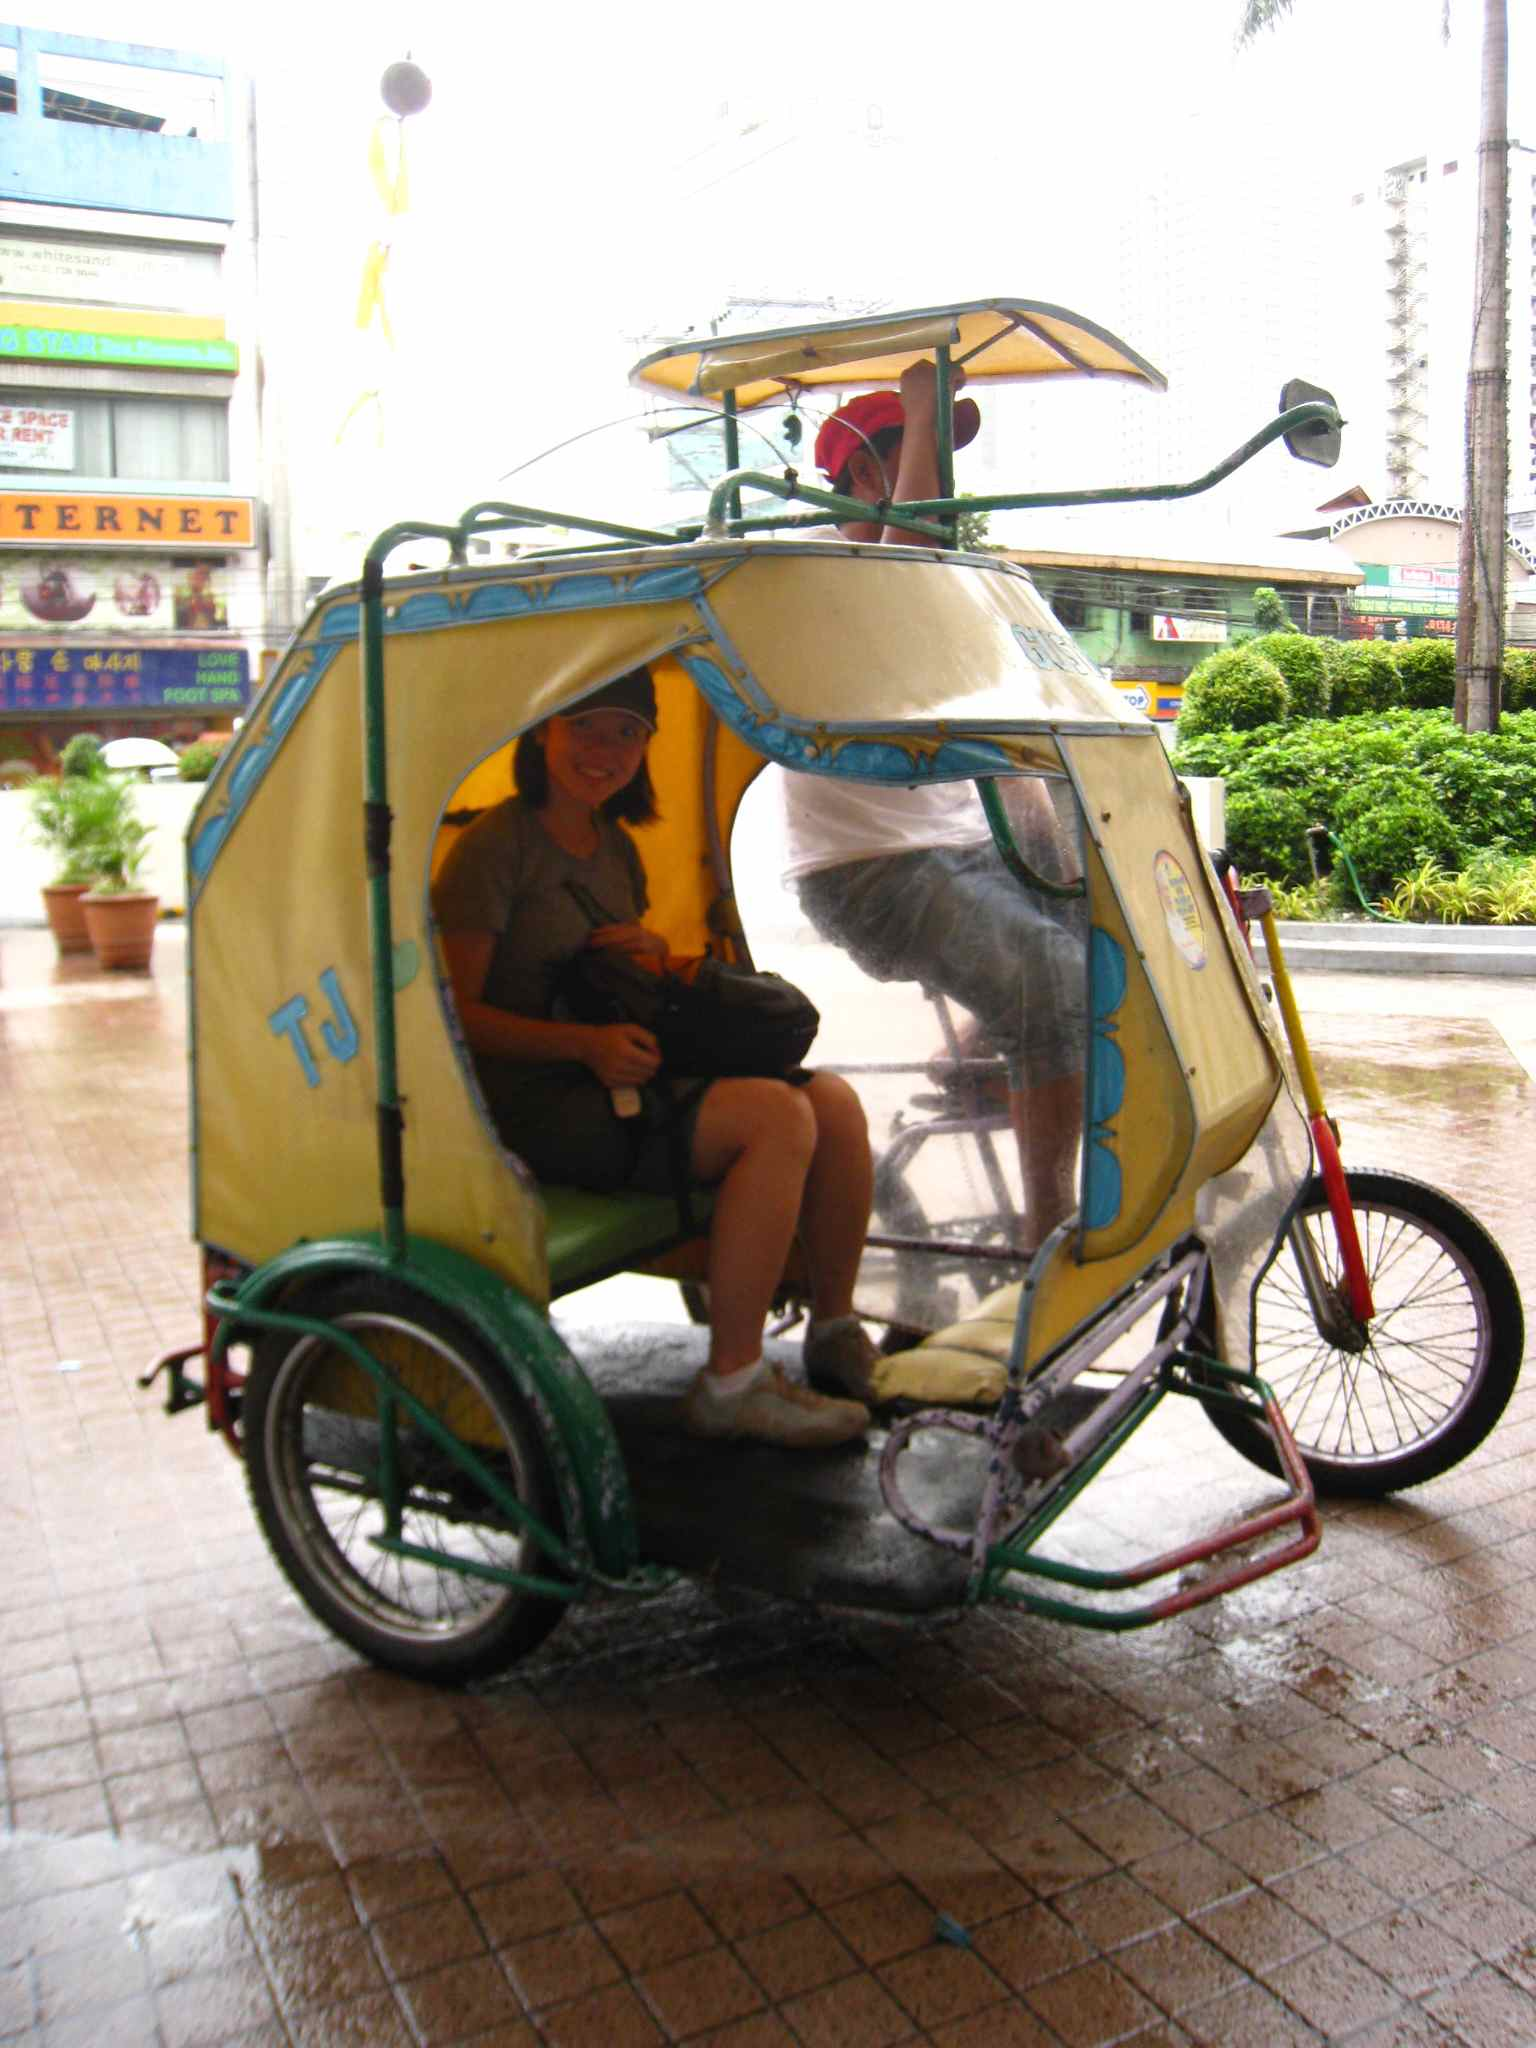 http://picturebangkok.files.wordpress.com/2009/08/pedicab.jpg